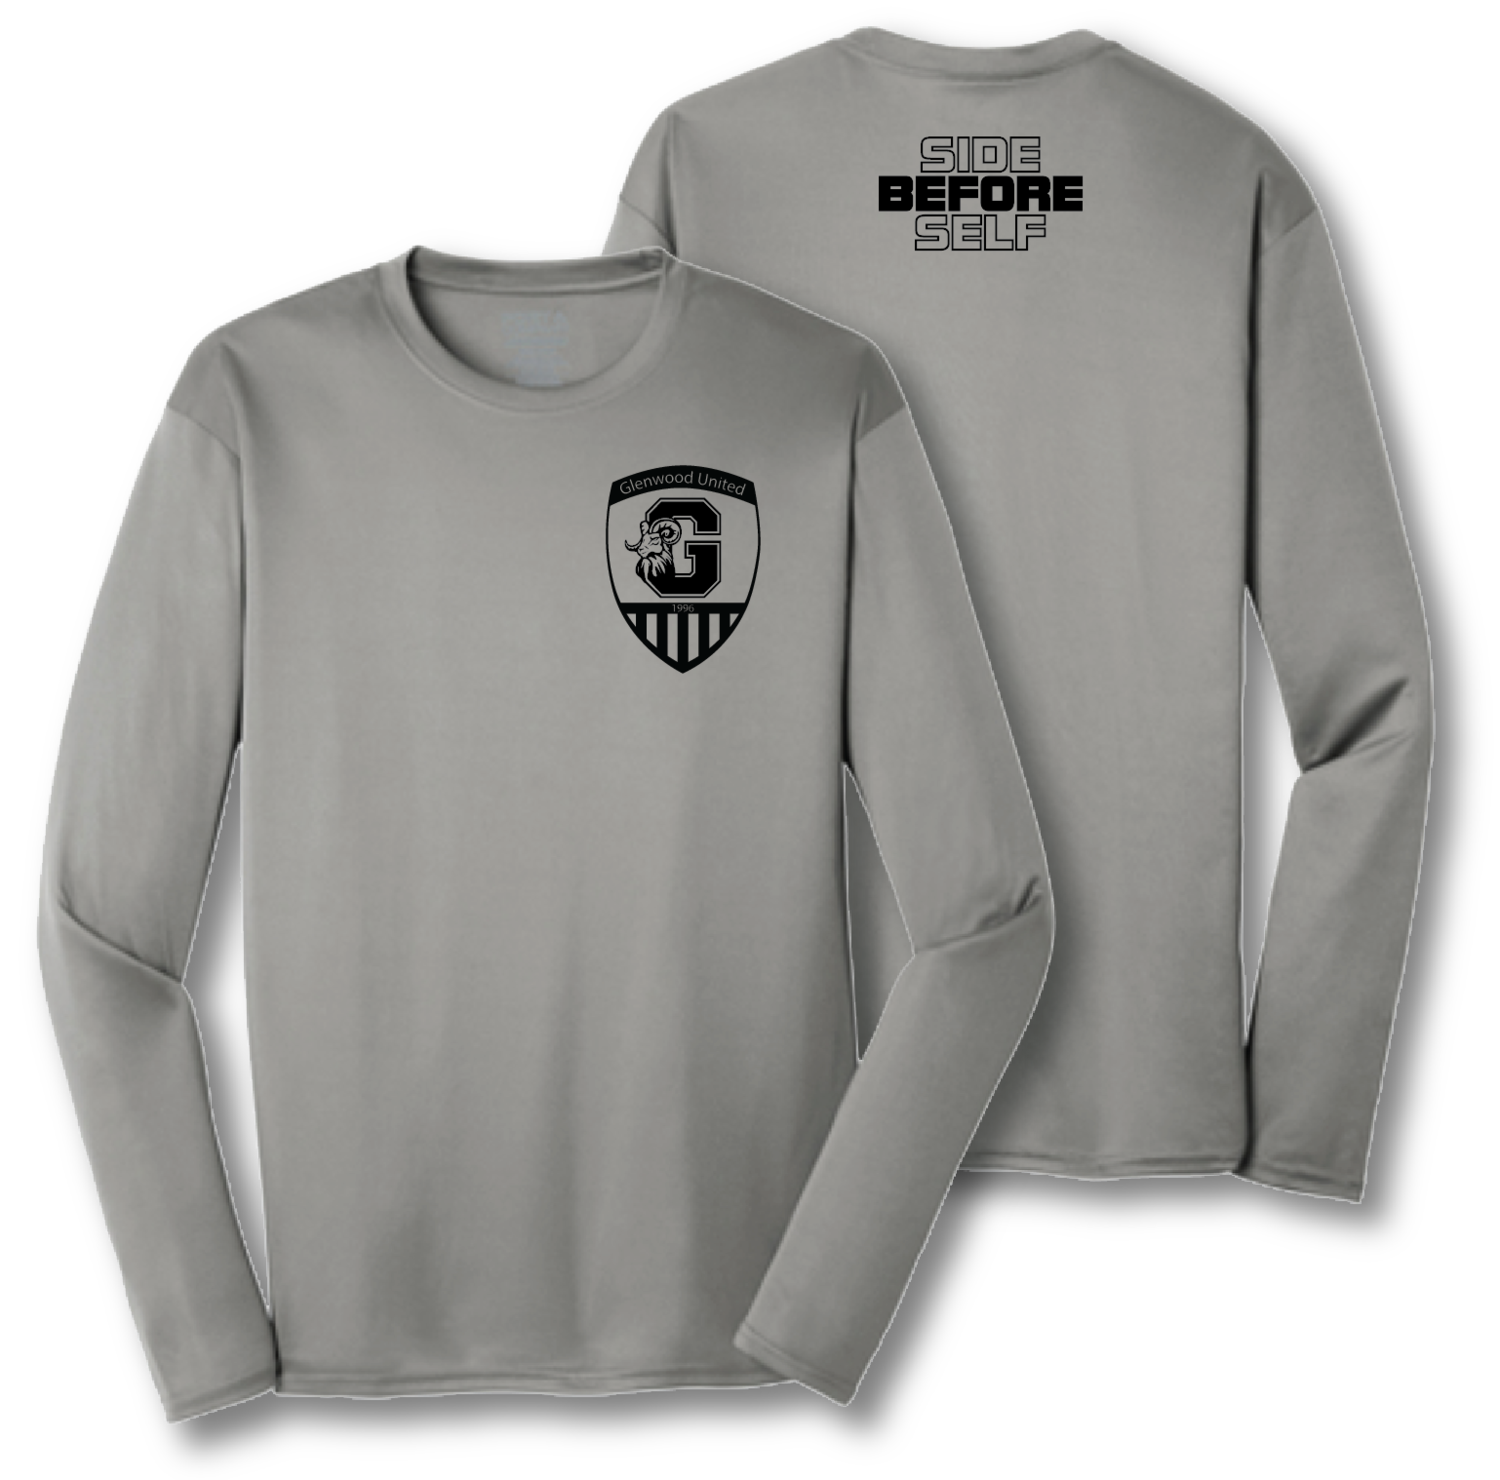 Glenwood United Long Sleeve Tee